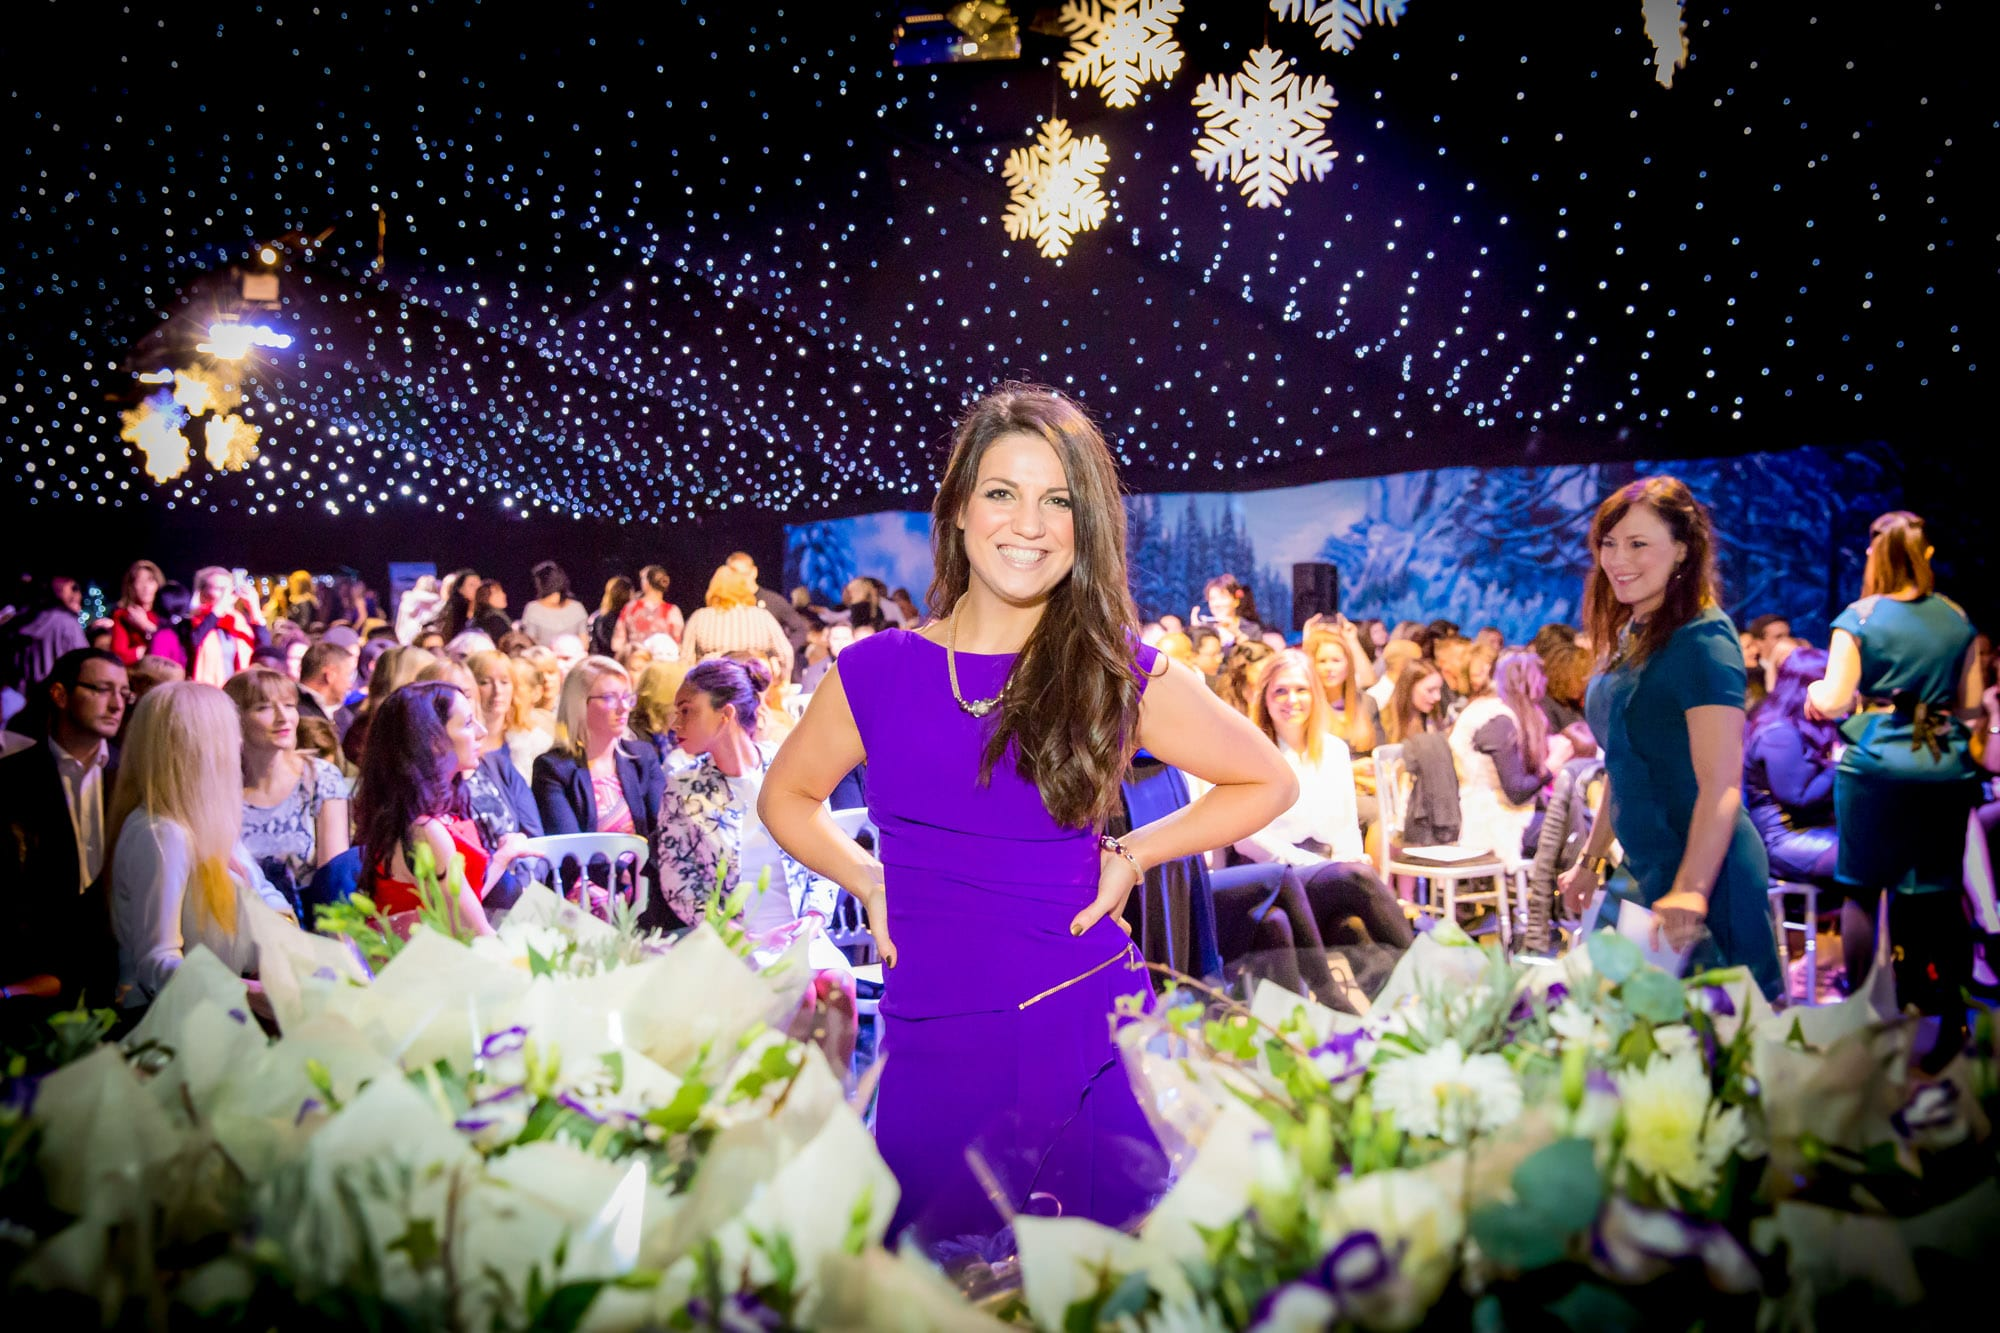 Woman surrounded by flowers at event